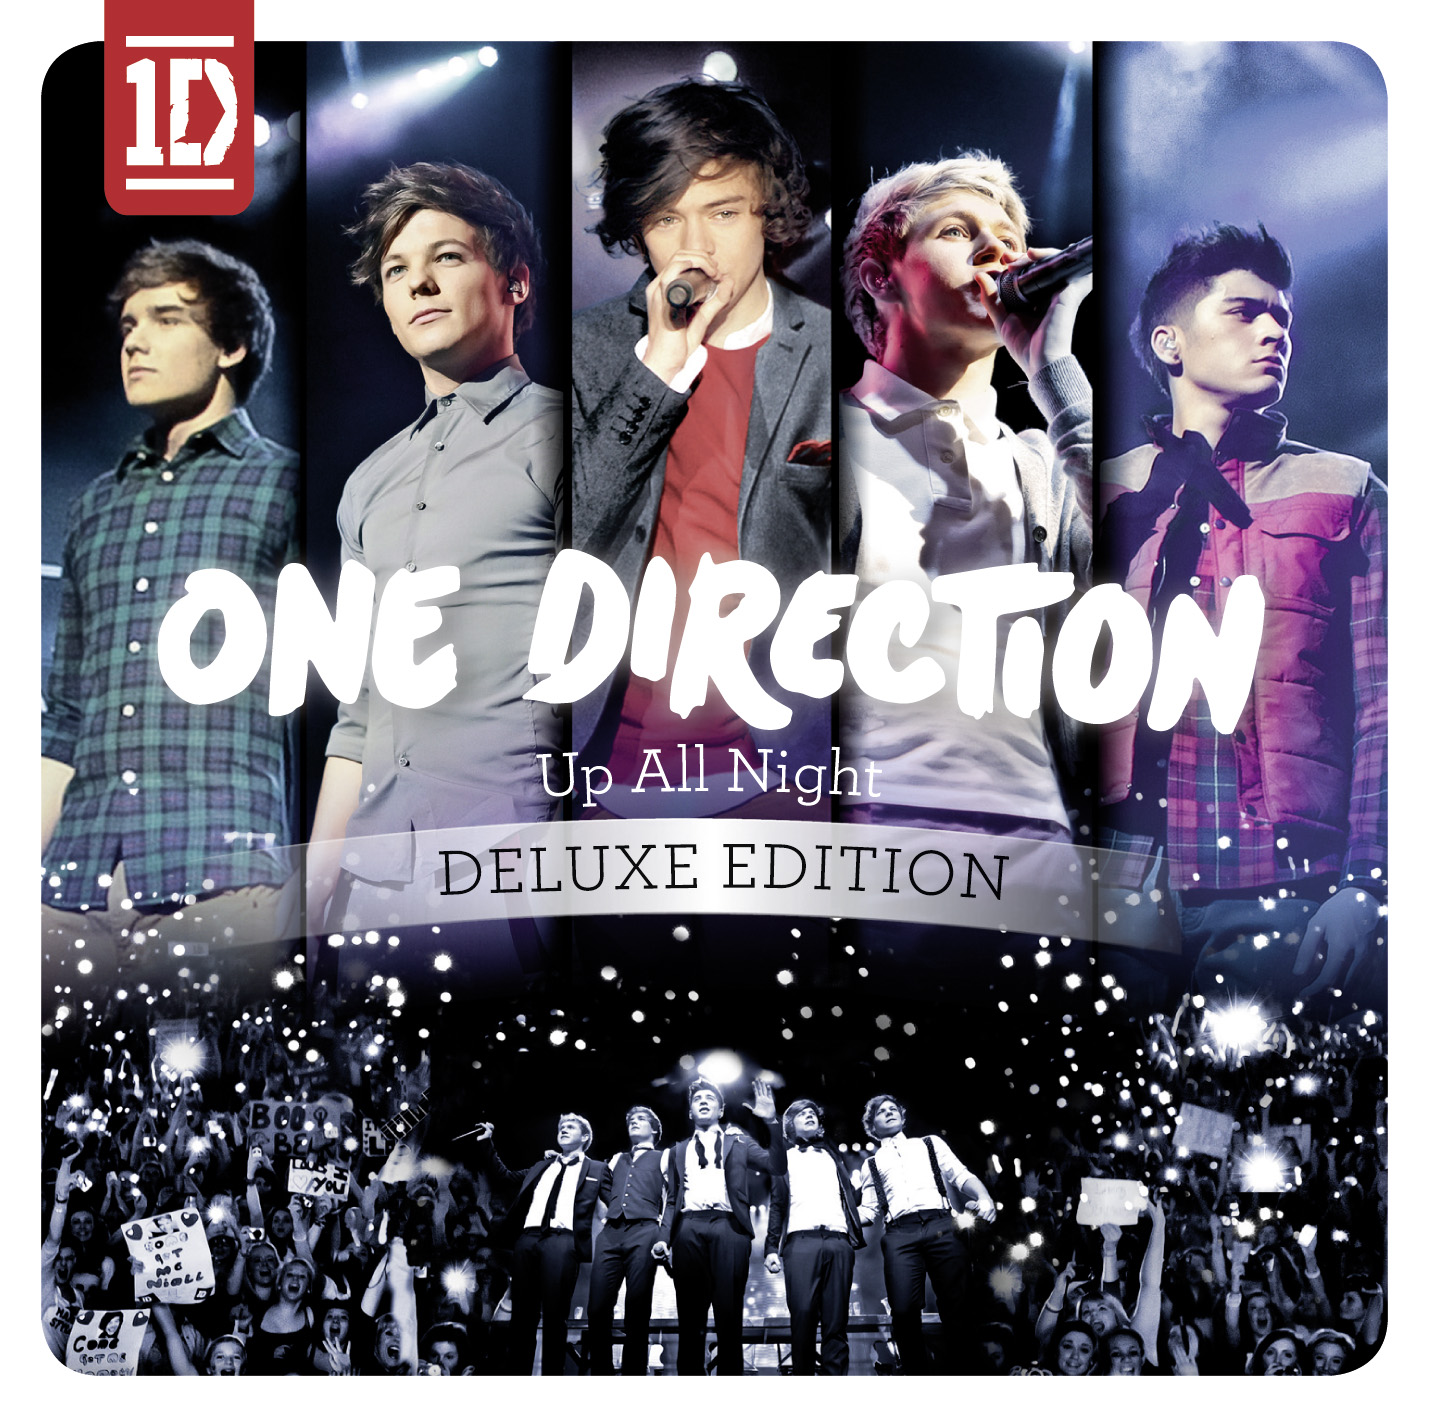 One Direction Up All Night DELUXE Edition CoverUp All Night Album Cover Deluxe